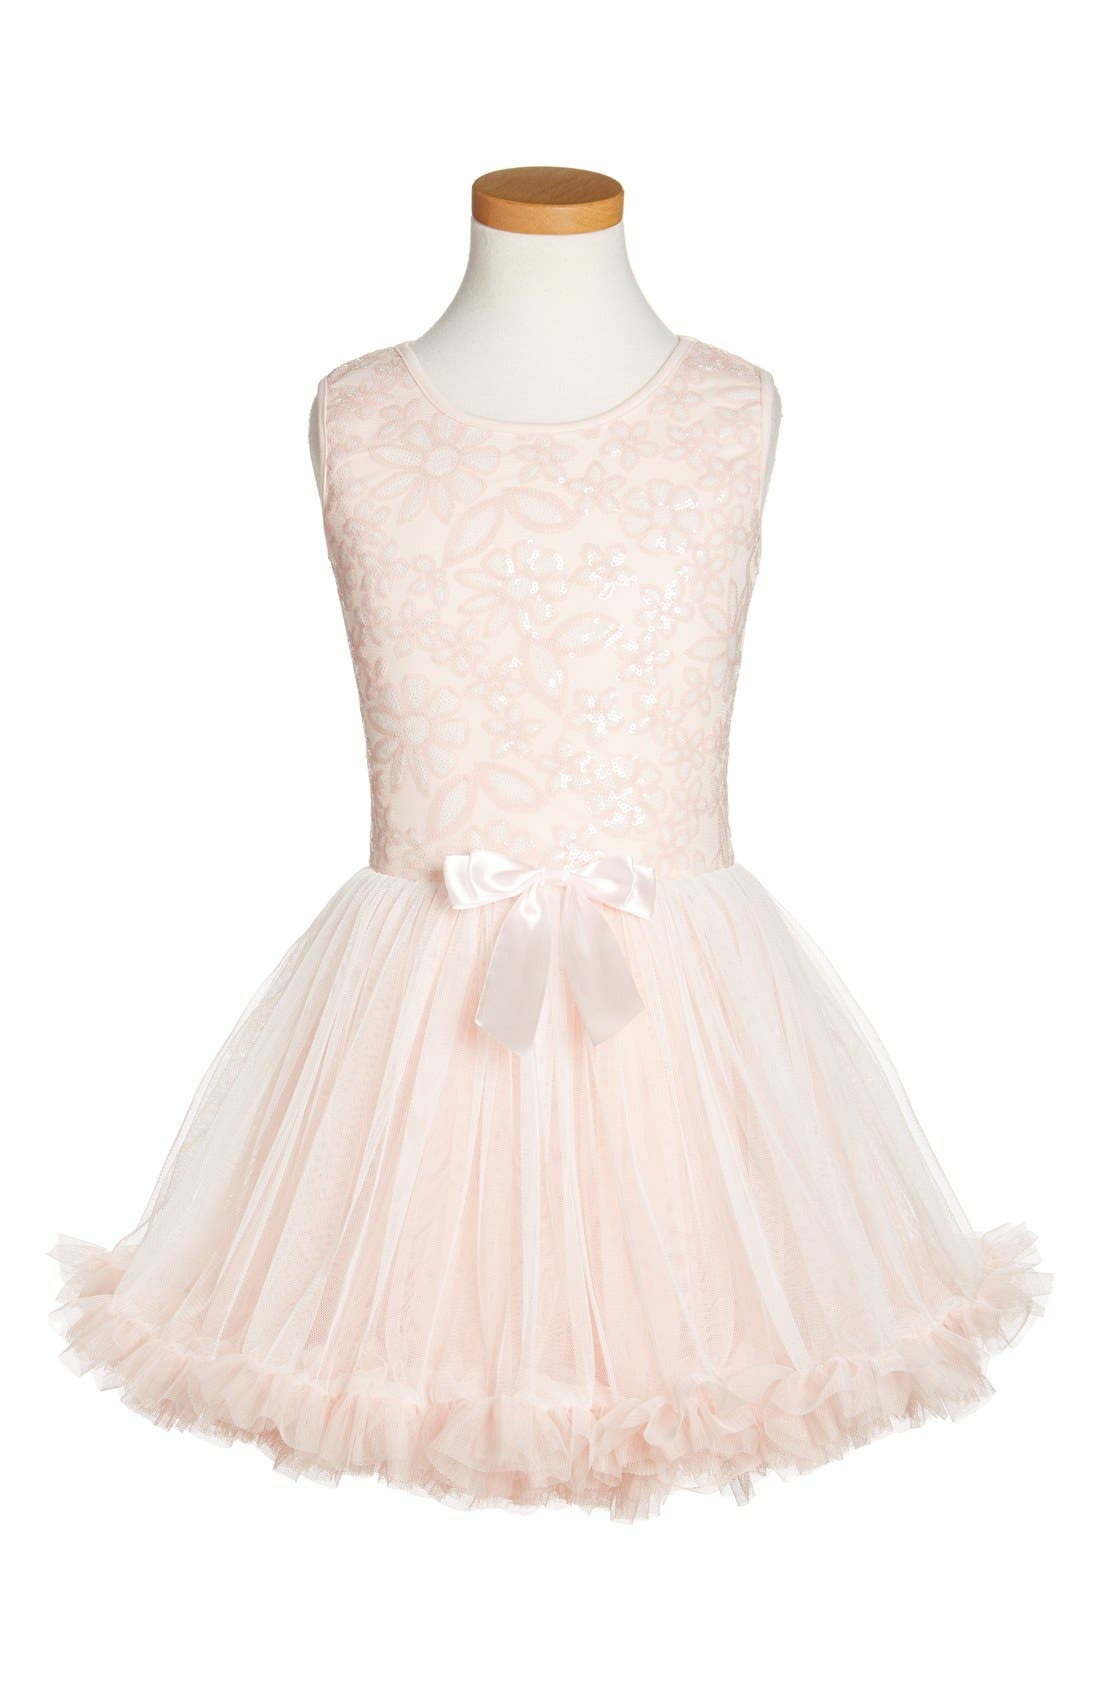 POPATU 'Peach Daisy' Sequin Pettidress